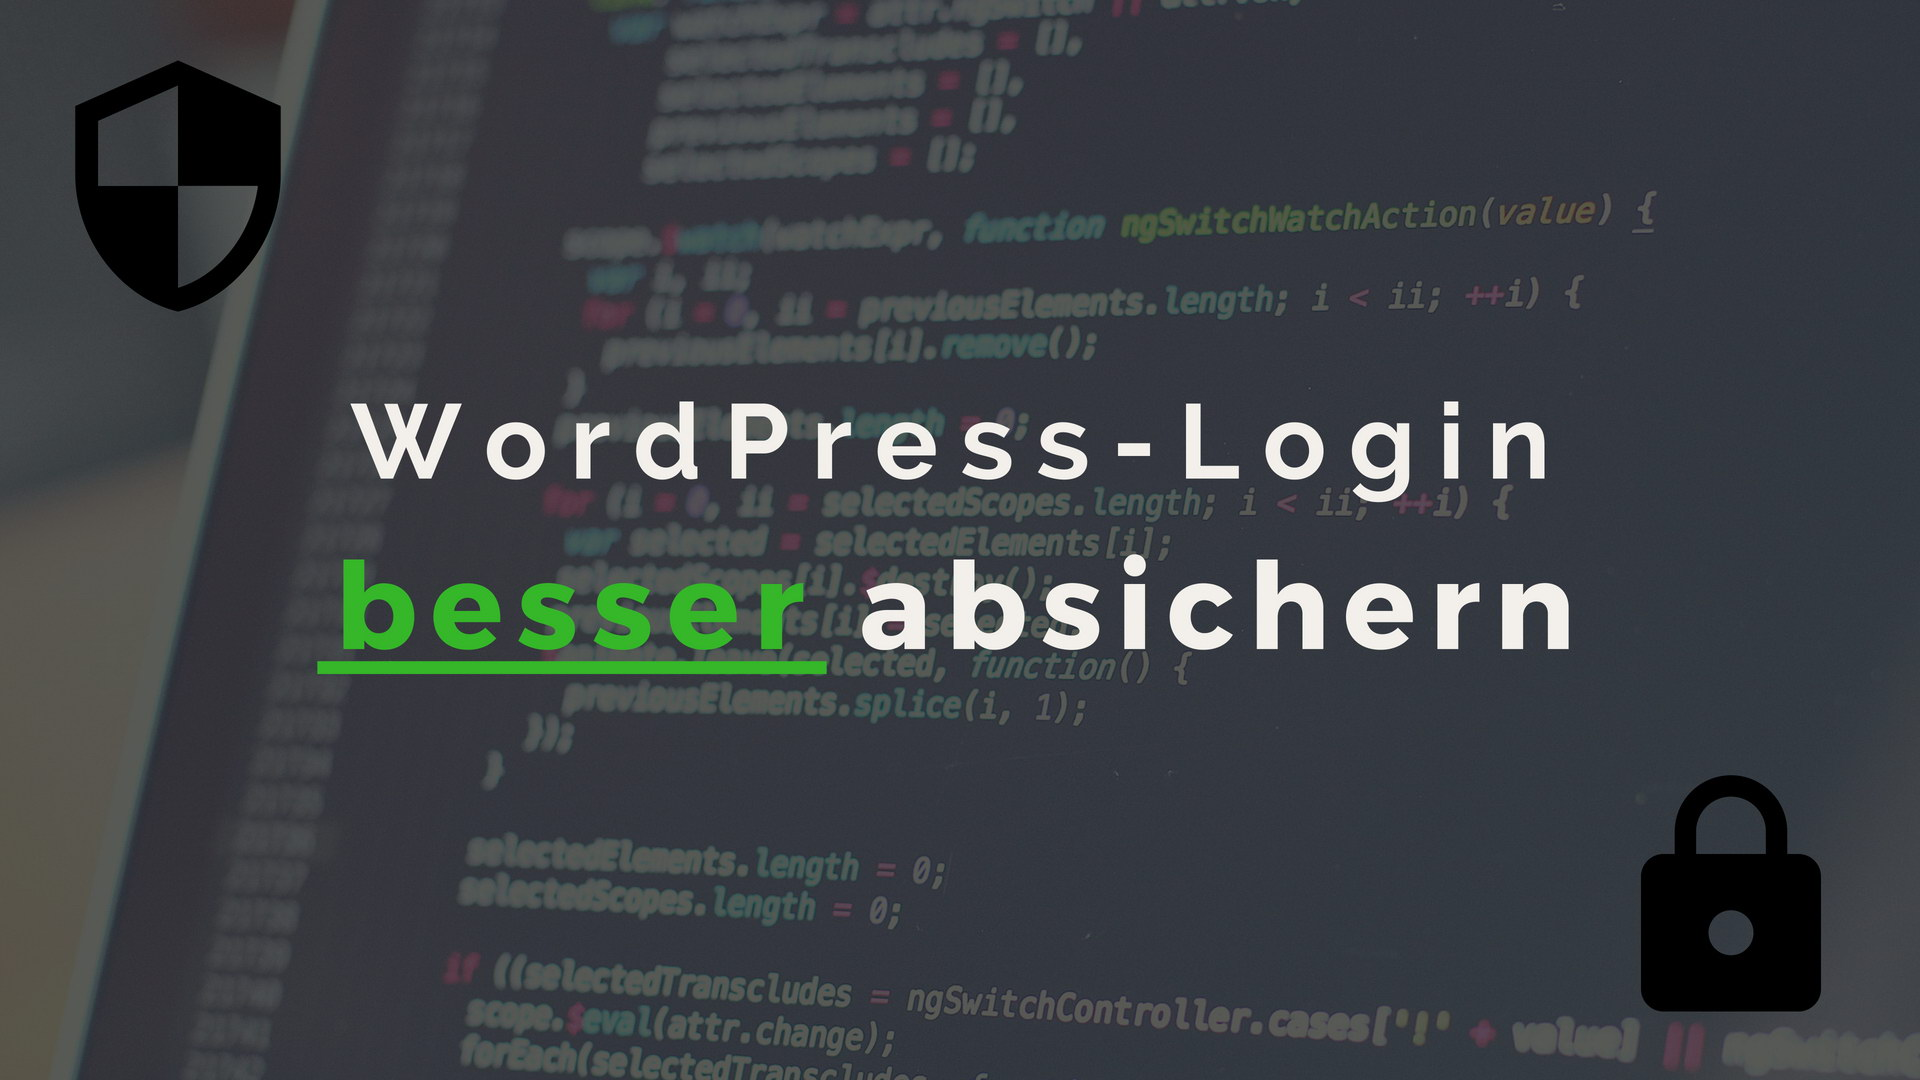 WordPress Login besser absichern